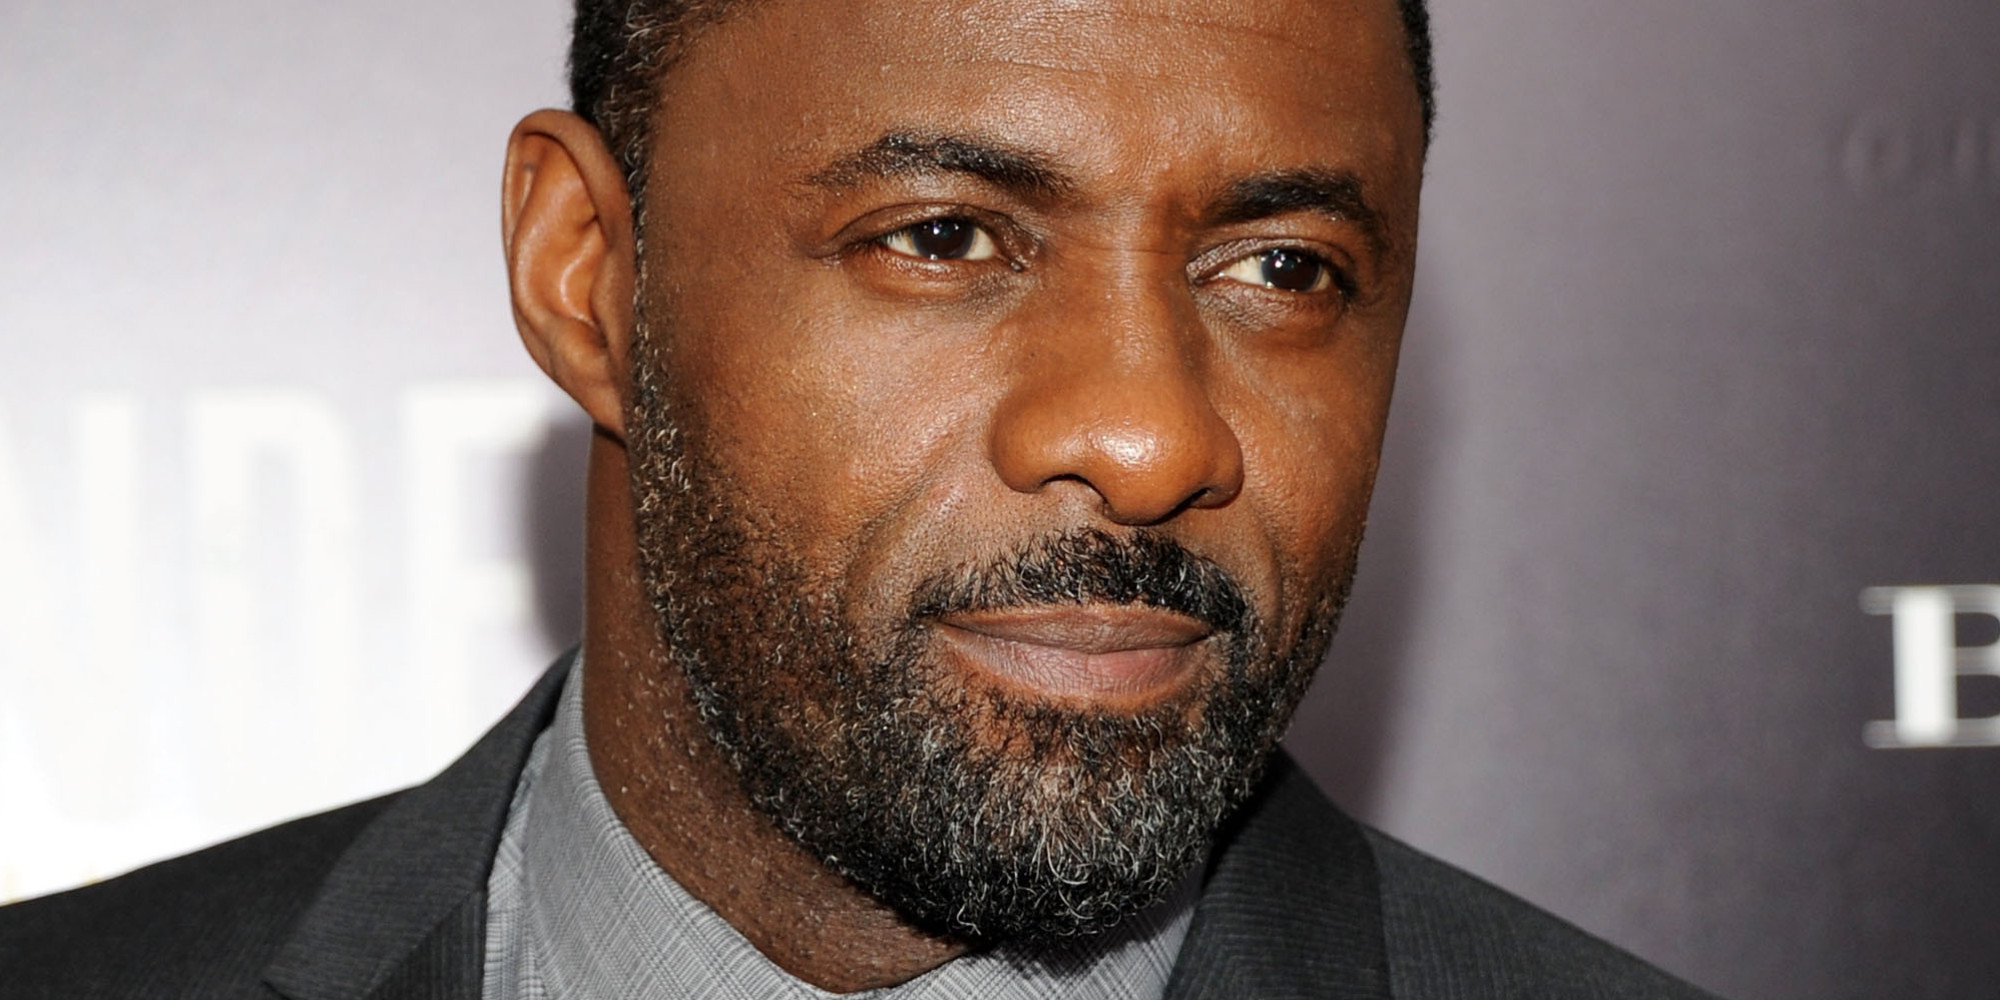 """NEW YORK, NY - NOVEMBER 25: Actor Idris Elba attends the screening of """"Mandela: Long Walk to Freedom"""", hosted by U2, Anna Wintour and Bob & Harvey Weinstein, with Burberry at the Ziegfeld Theater on November 25, 2013 in New York City. (Photo by Ben Gabbe/FilmMagic)"""